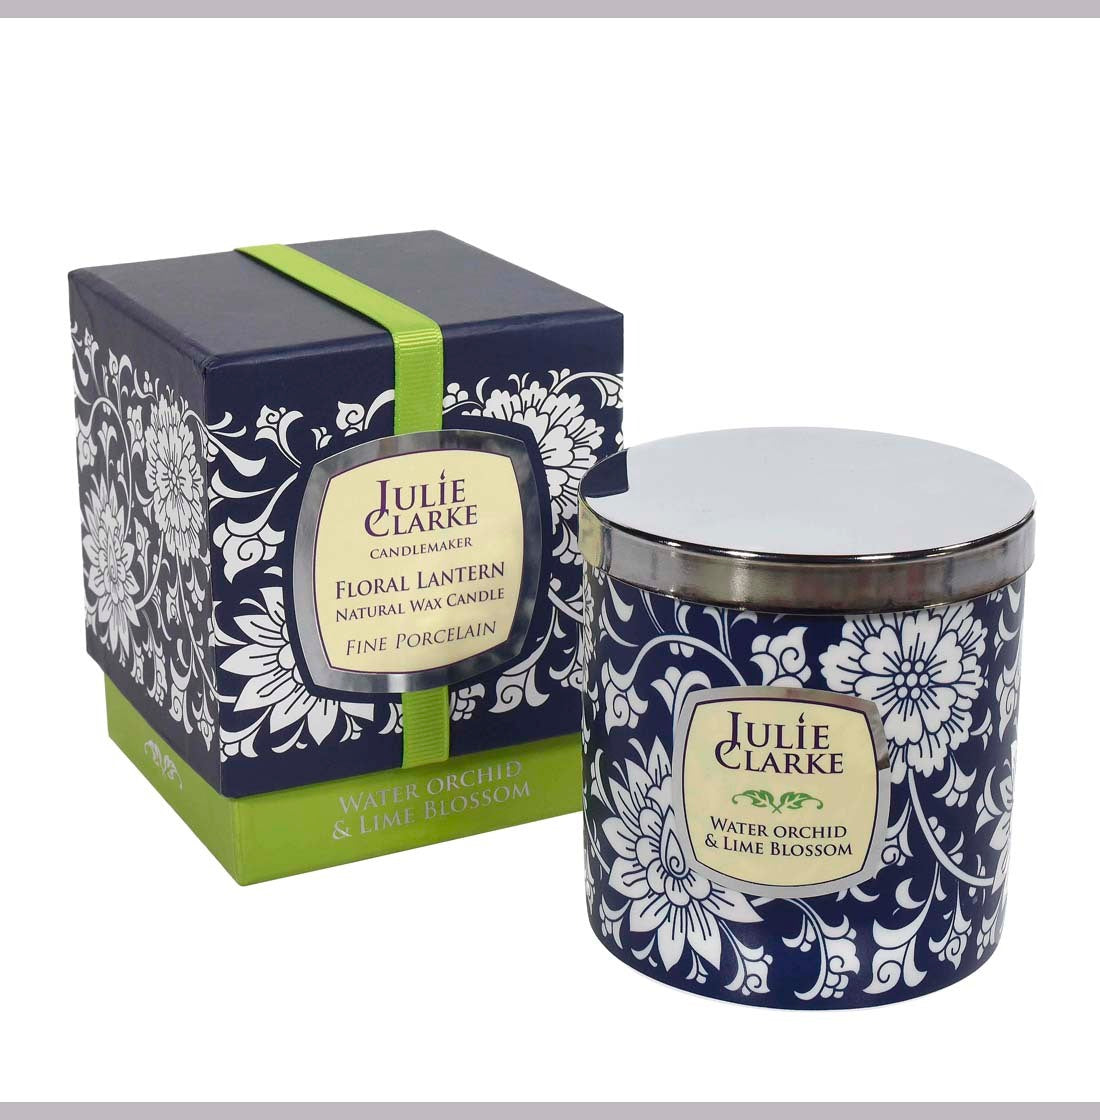 Water Orchid & Lime Blossom Floral Porcelain Candle